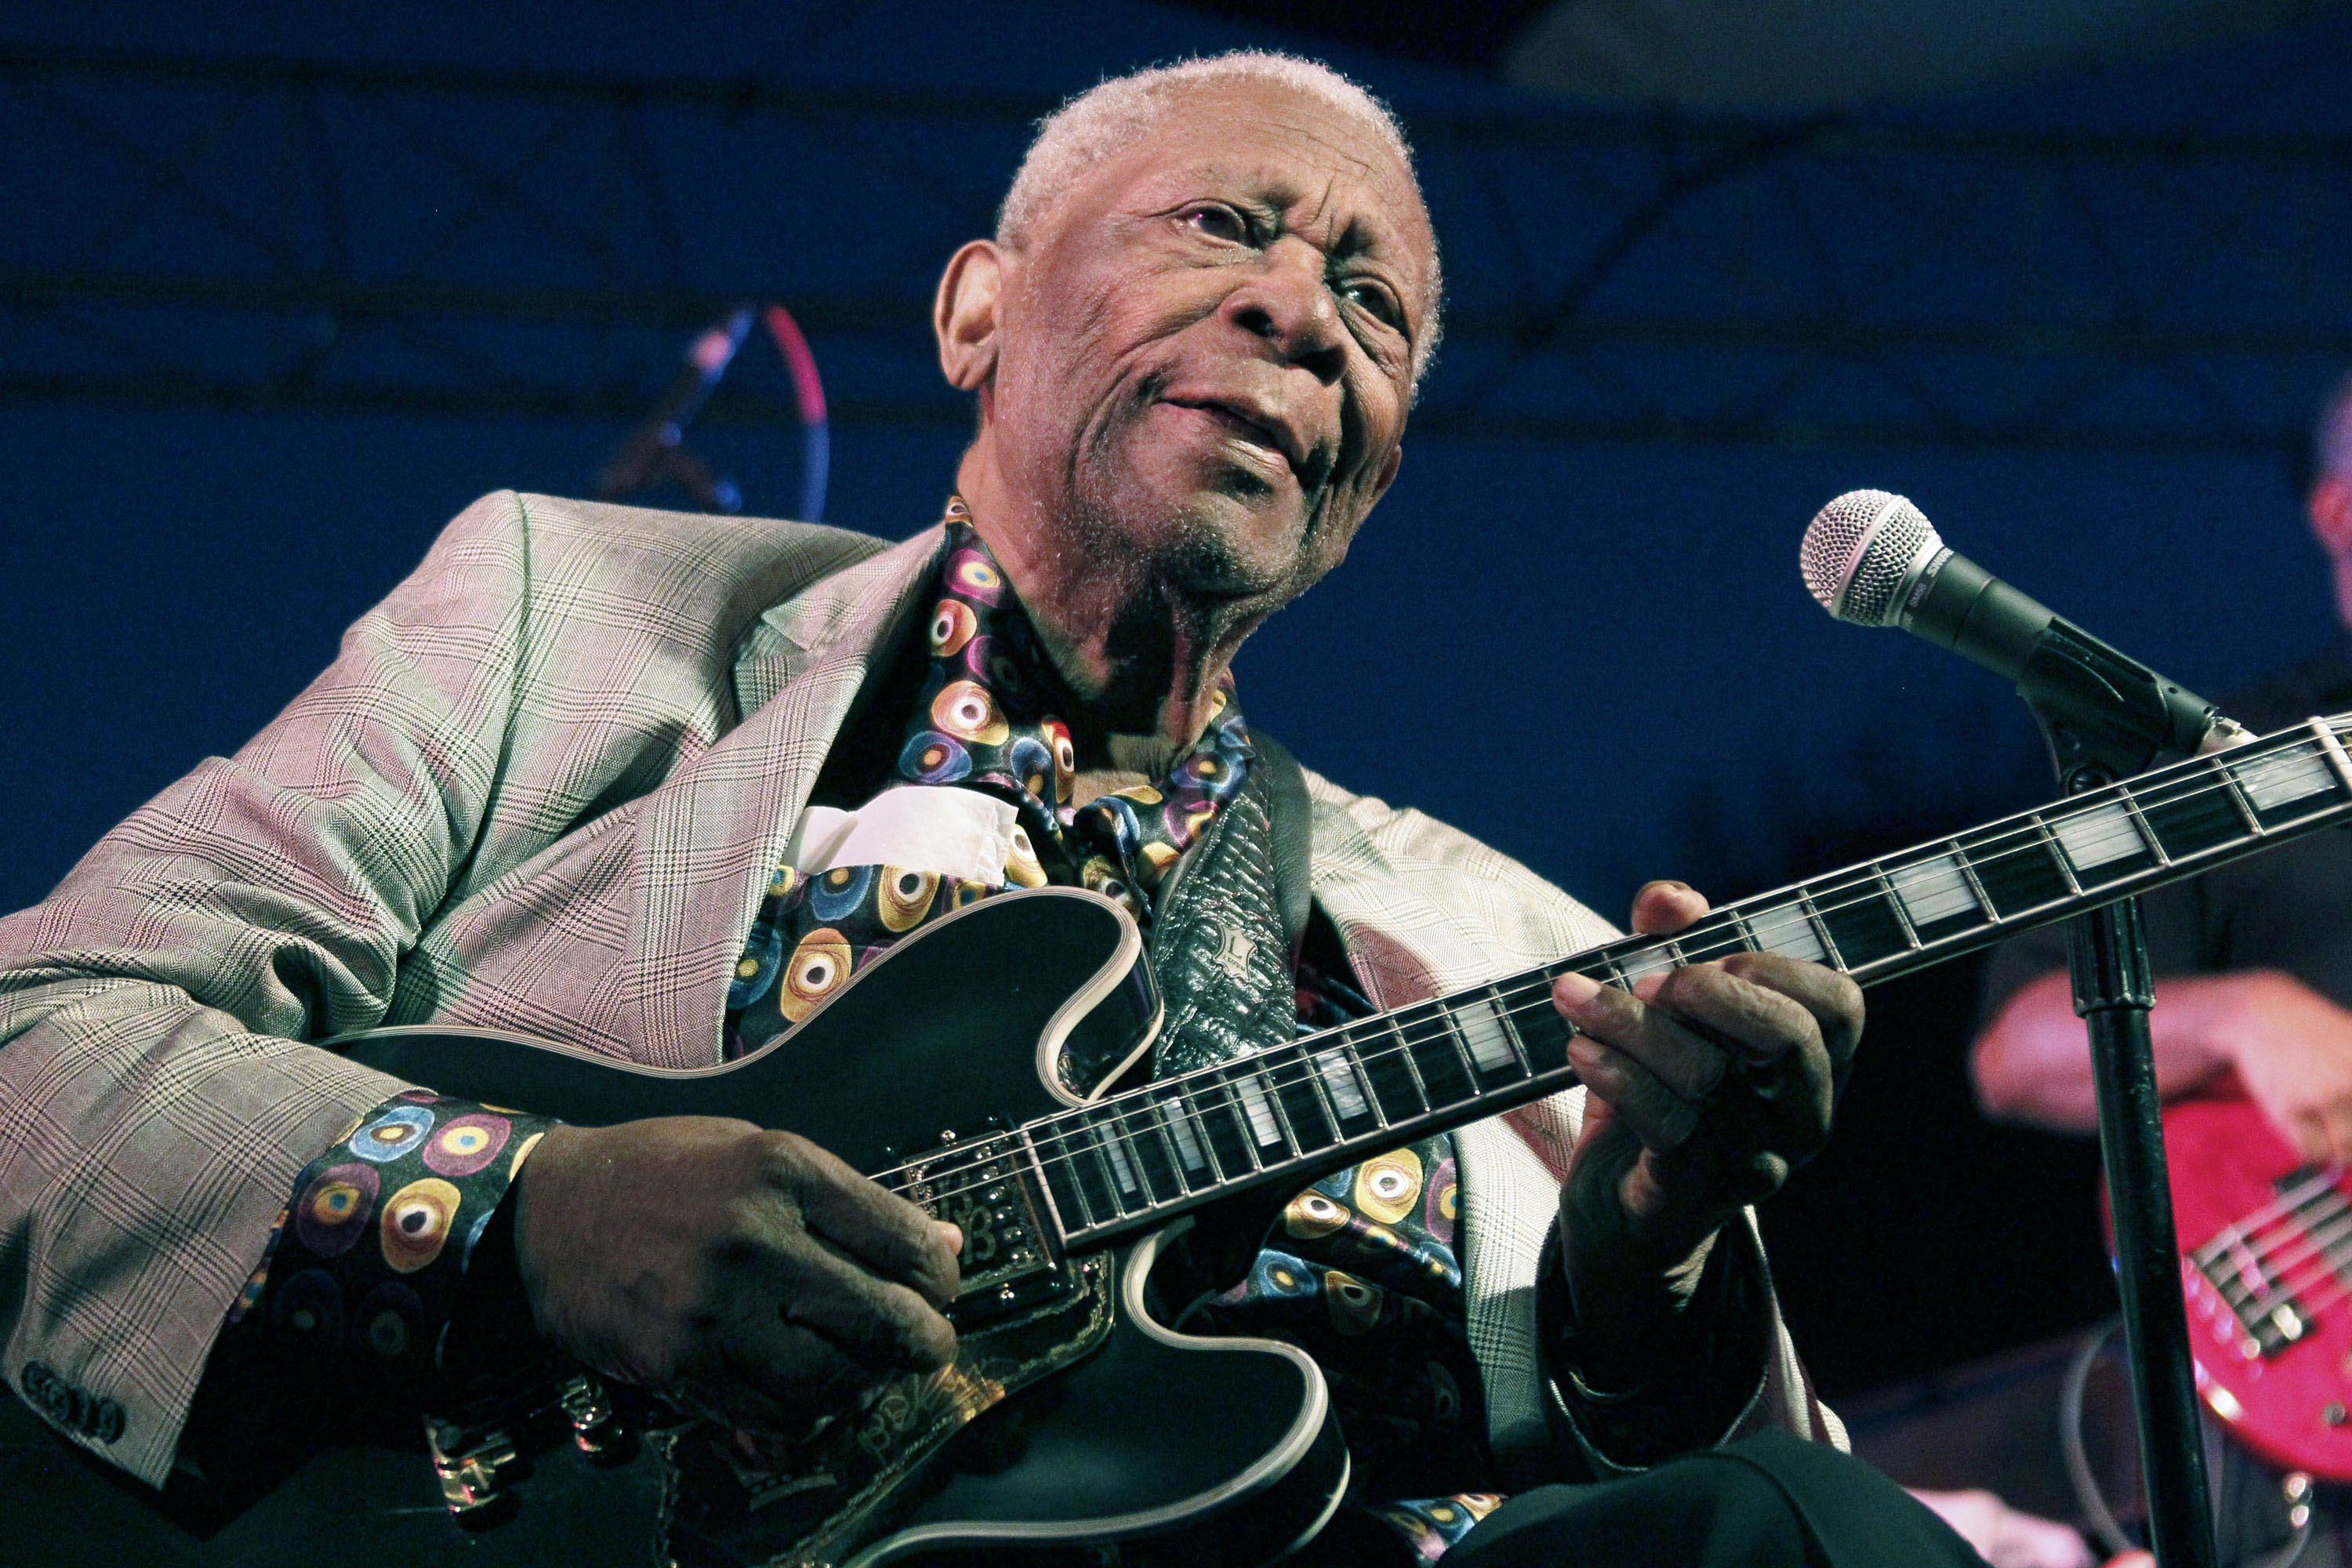 Blues legend B.B. King in hospice care at his home